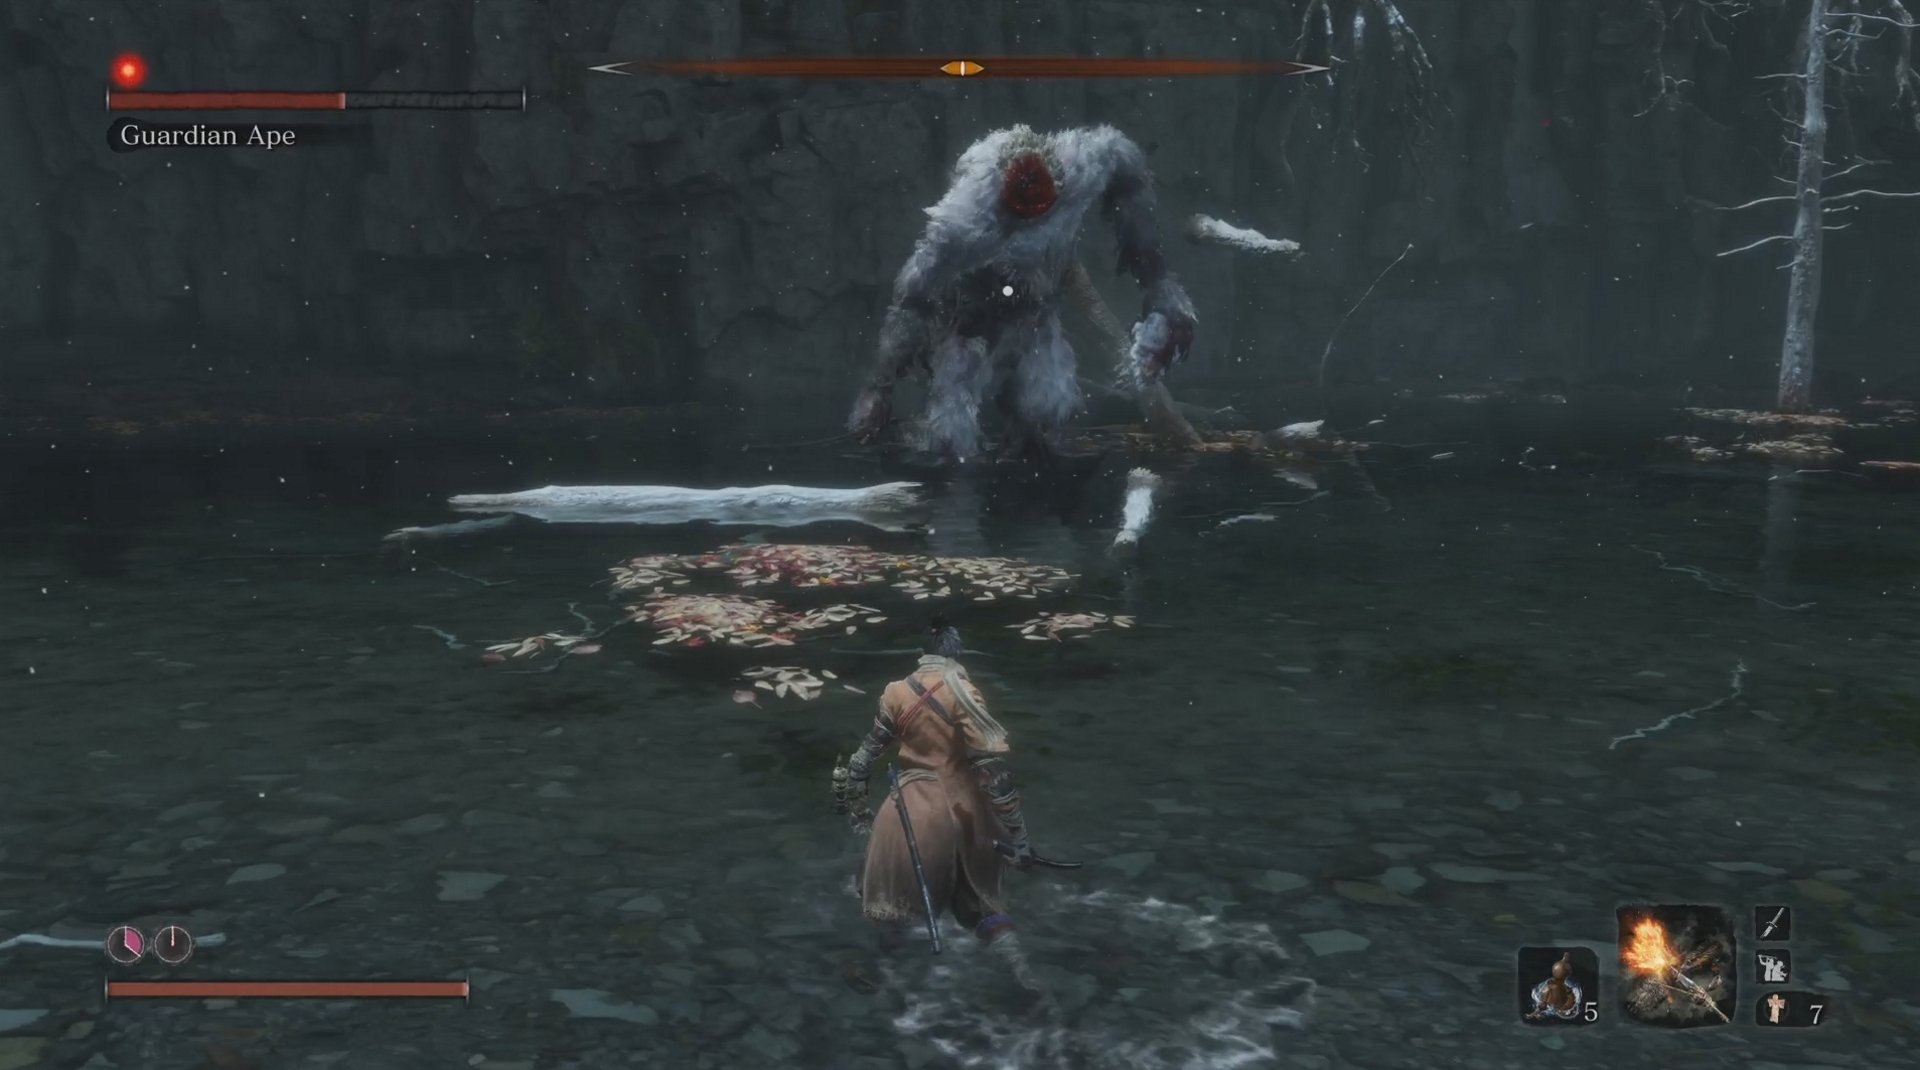 How to beat the Guardian Ape boss fight in Sekiro: Shadows Die Twice